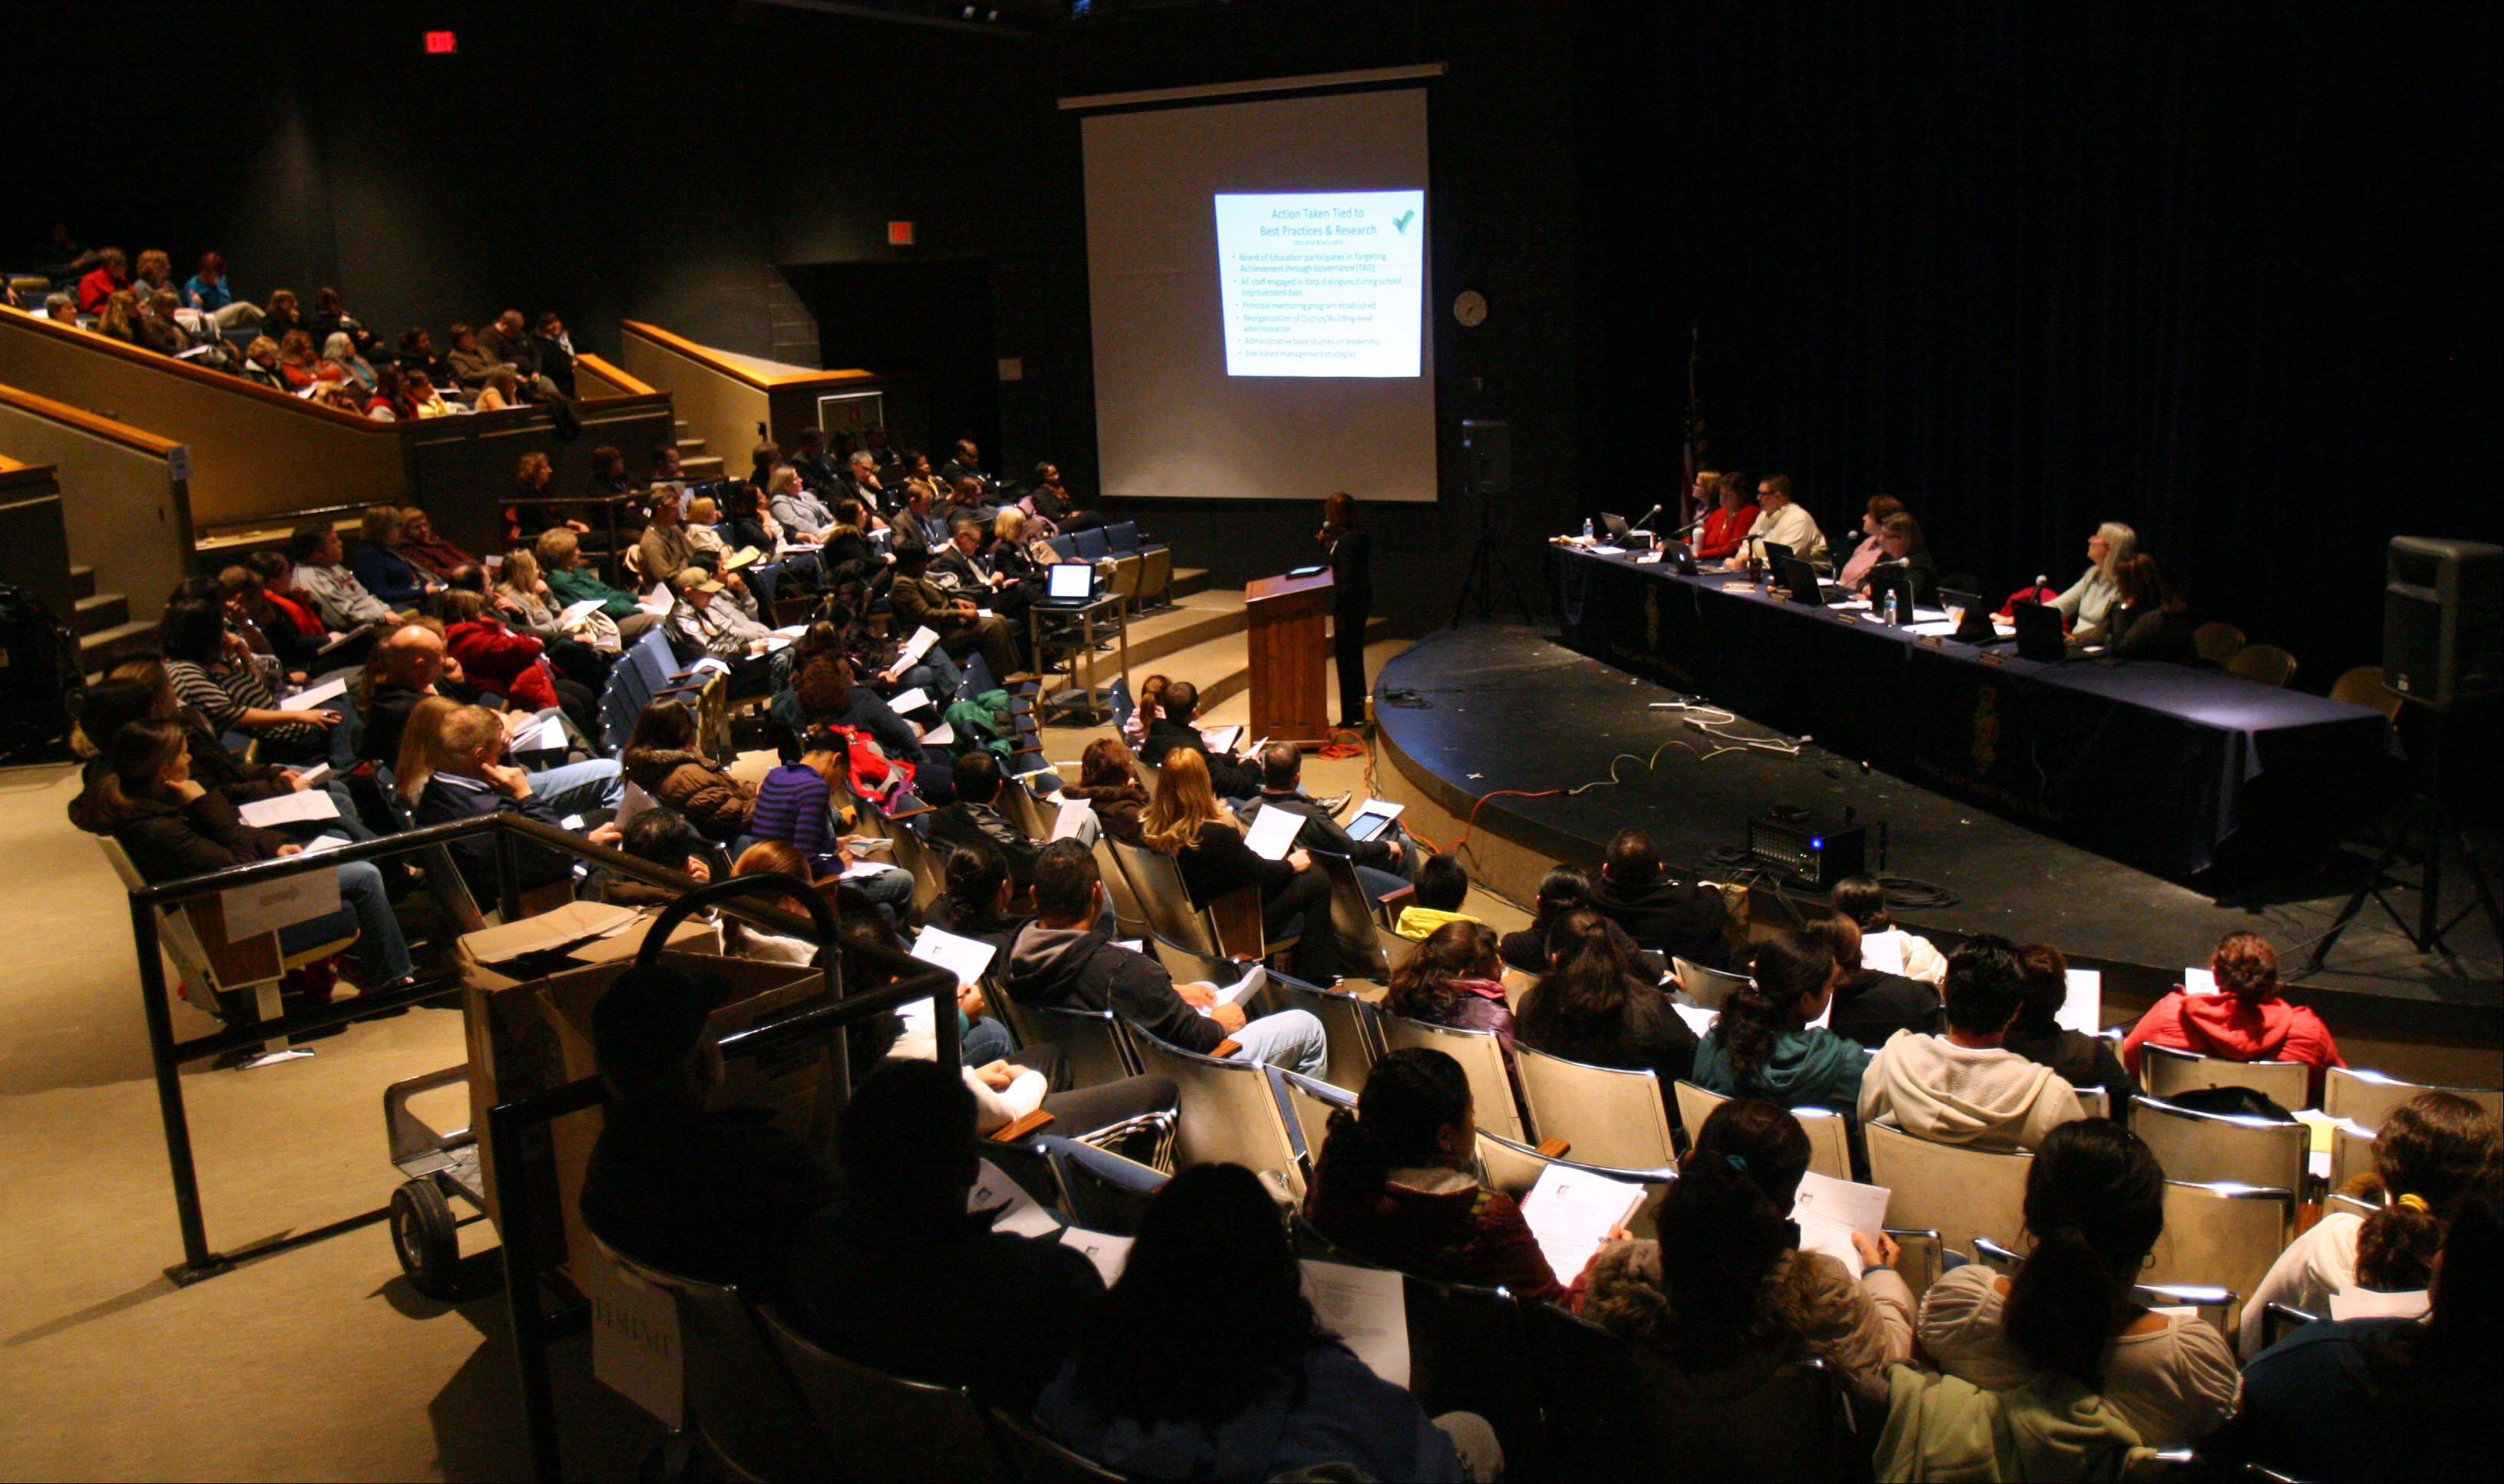 Parents filled the Round Lake High School theater Monday night to hear the Round Lake Area Unit District 116 board lay out their plan to restructure seven elementary schools in an effort to improve student academic achievement.